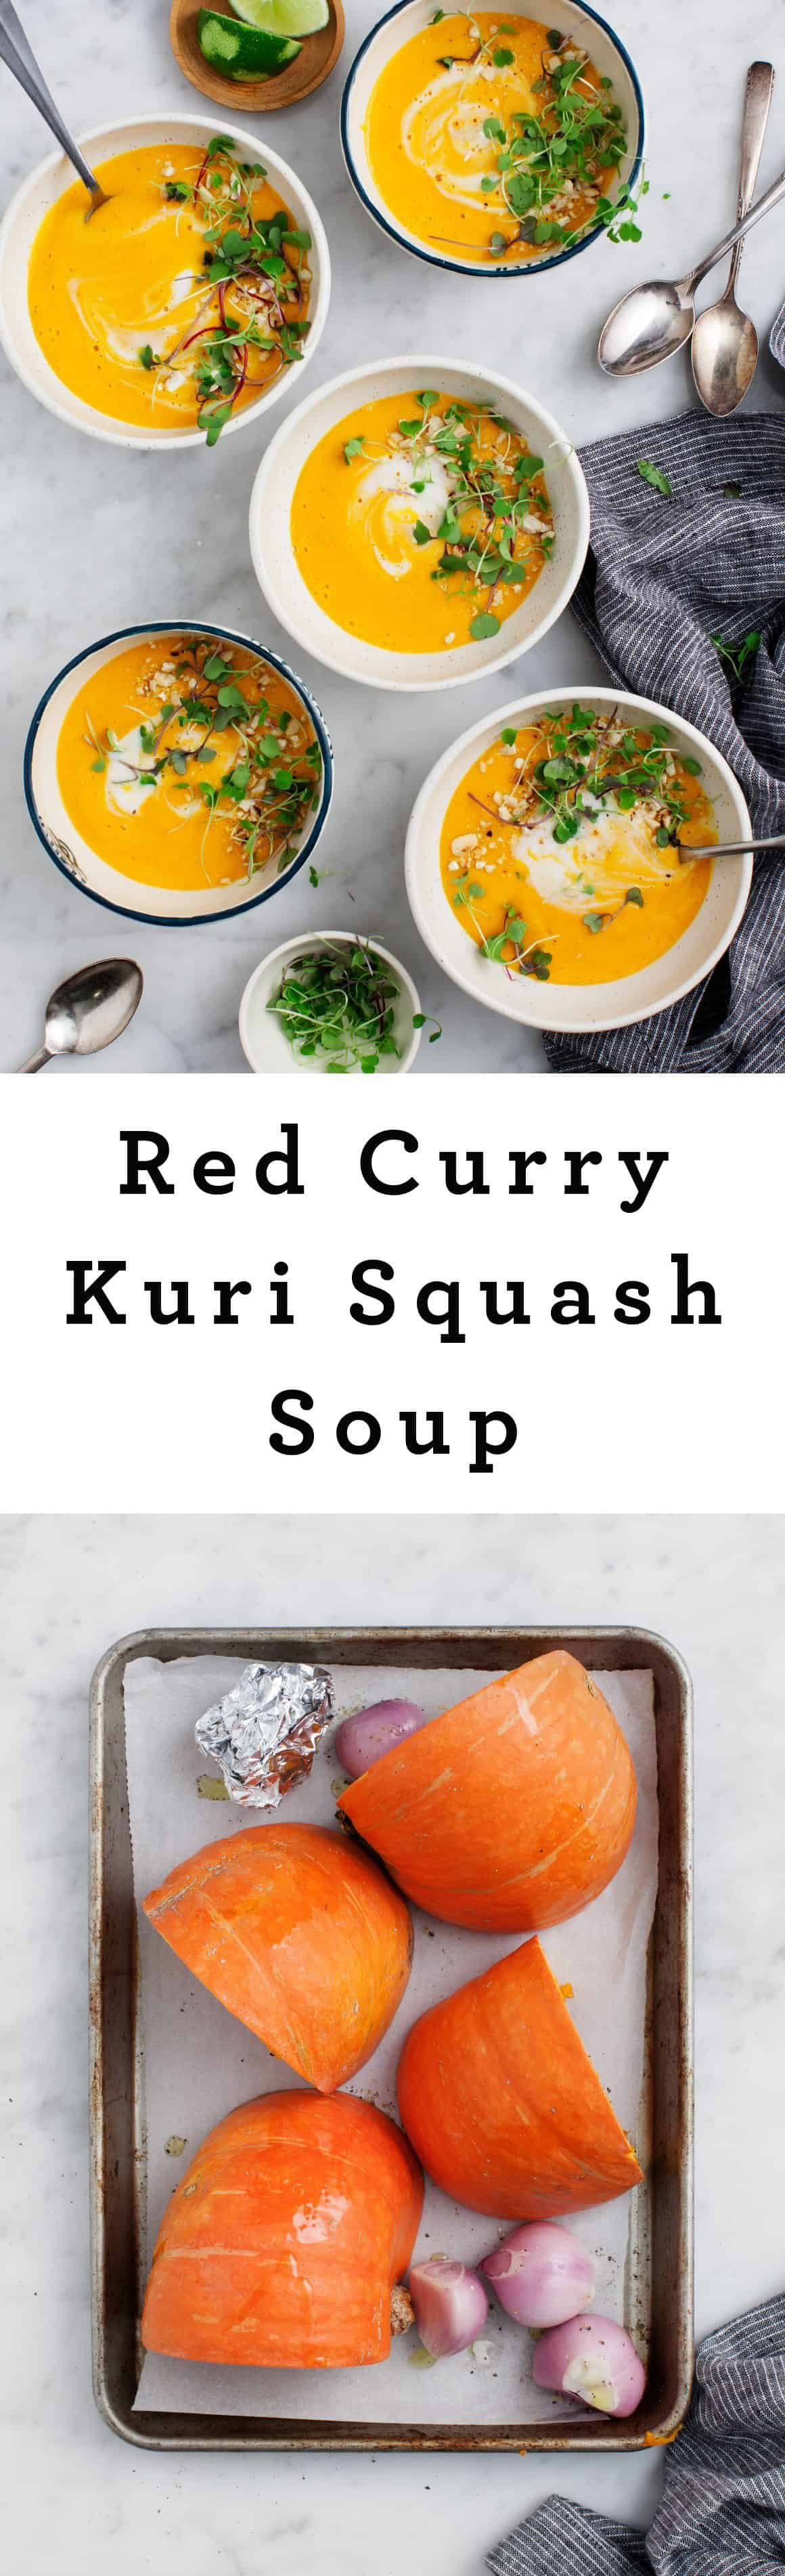 Red Curry Kuri Squash Soup